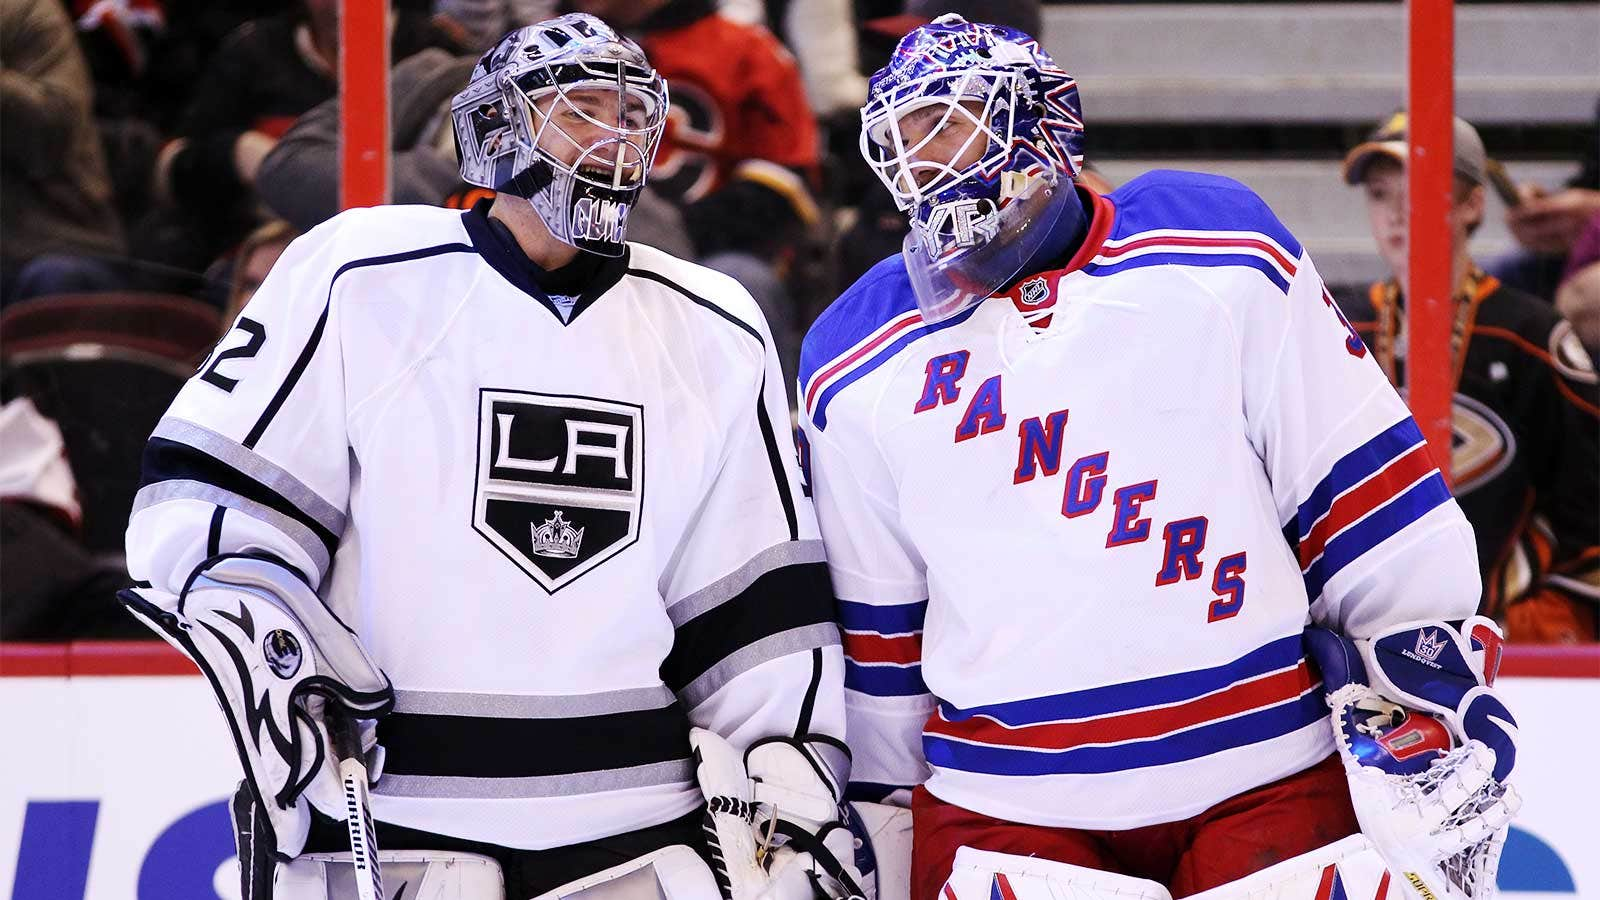 Finals First Look When Kings Battle Rangers Which Coast Will Claim The Cup